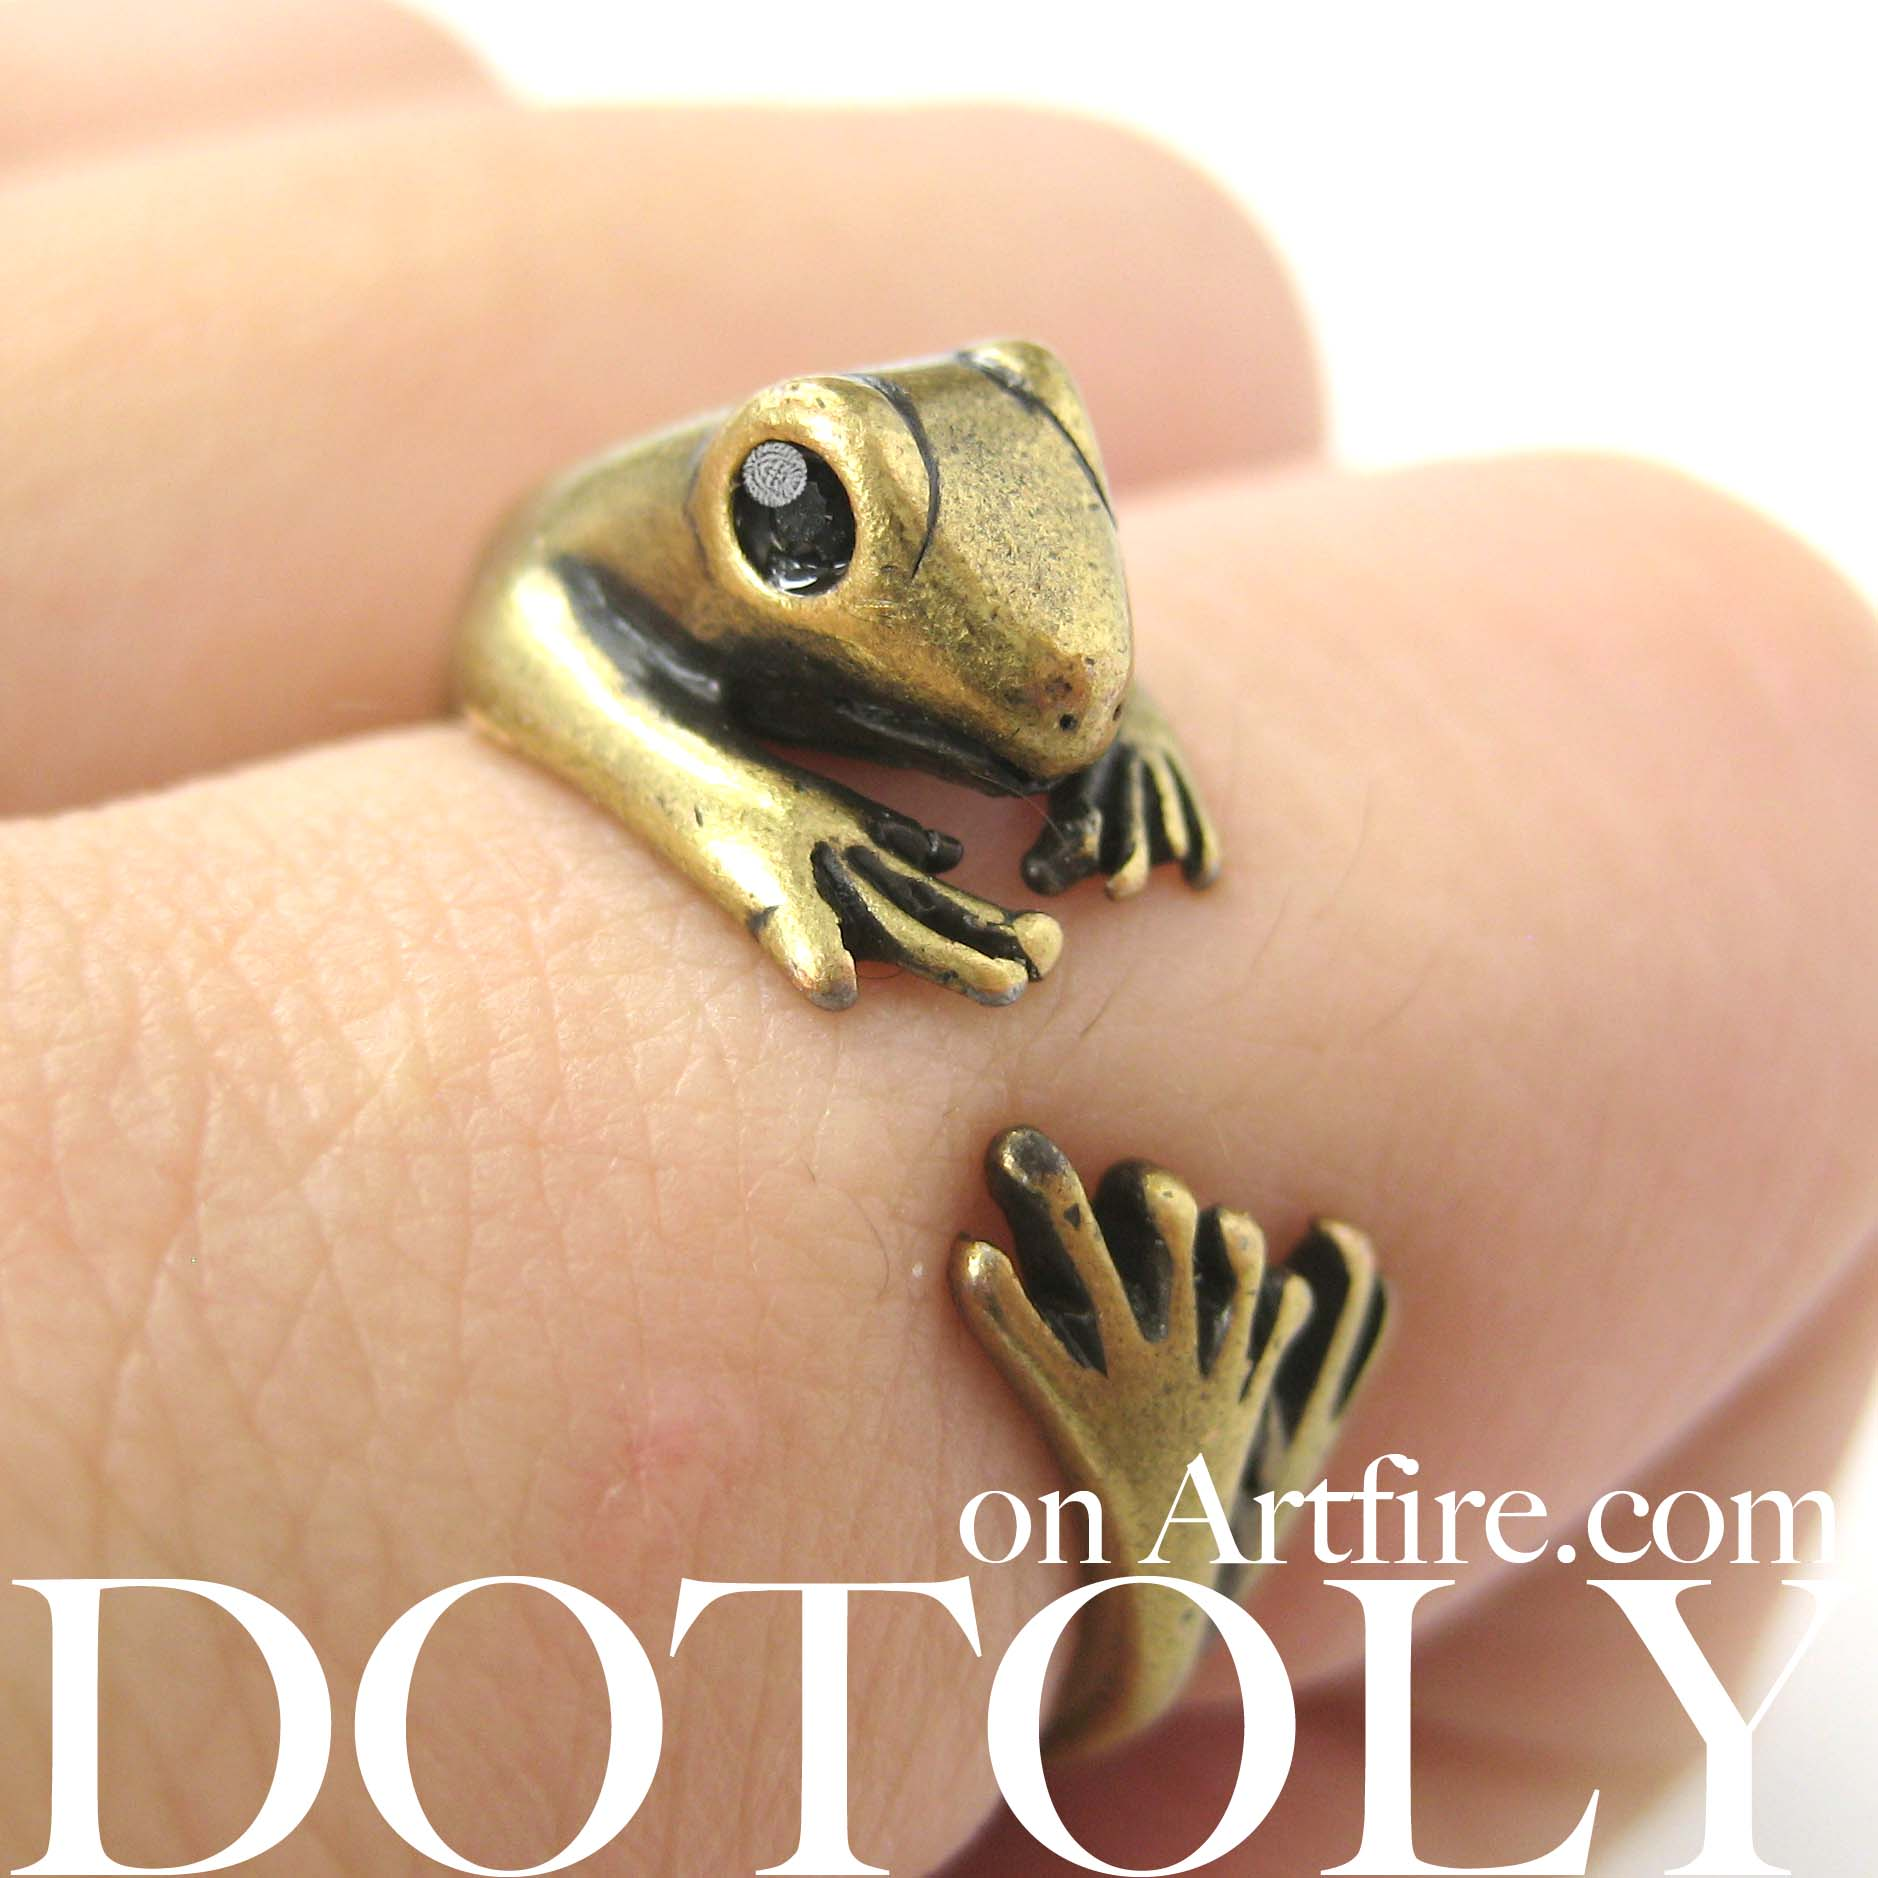 new steel stainless animal jewelry rings for item vintage punk lizard from men biker teenage rock cool accessories yisoso in casting